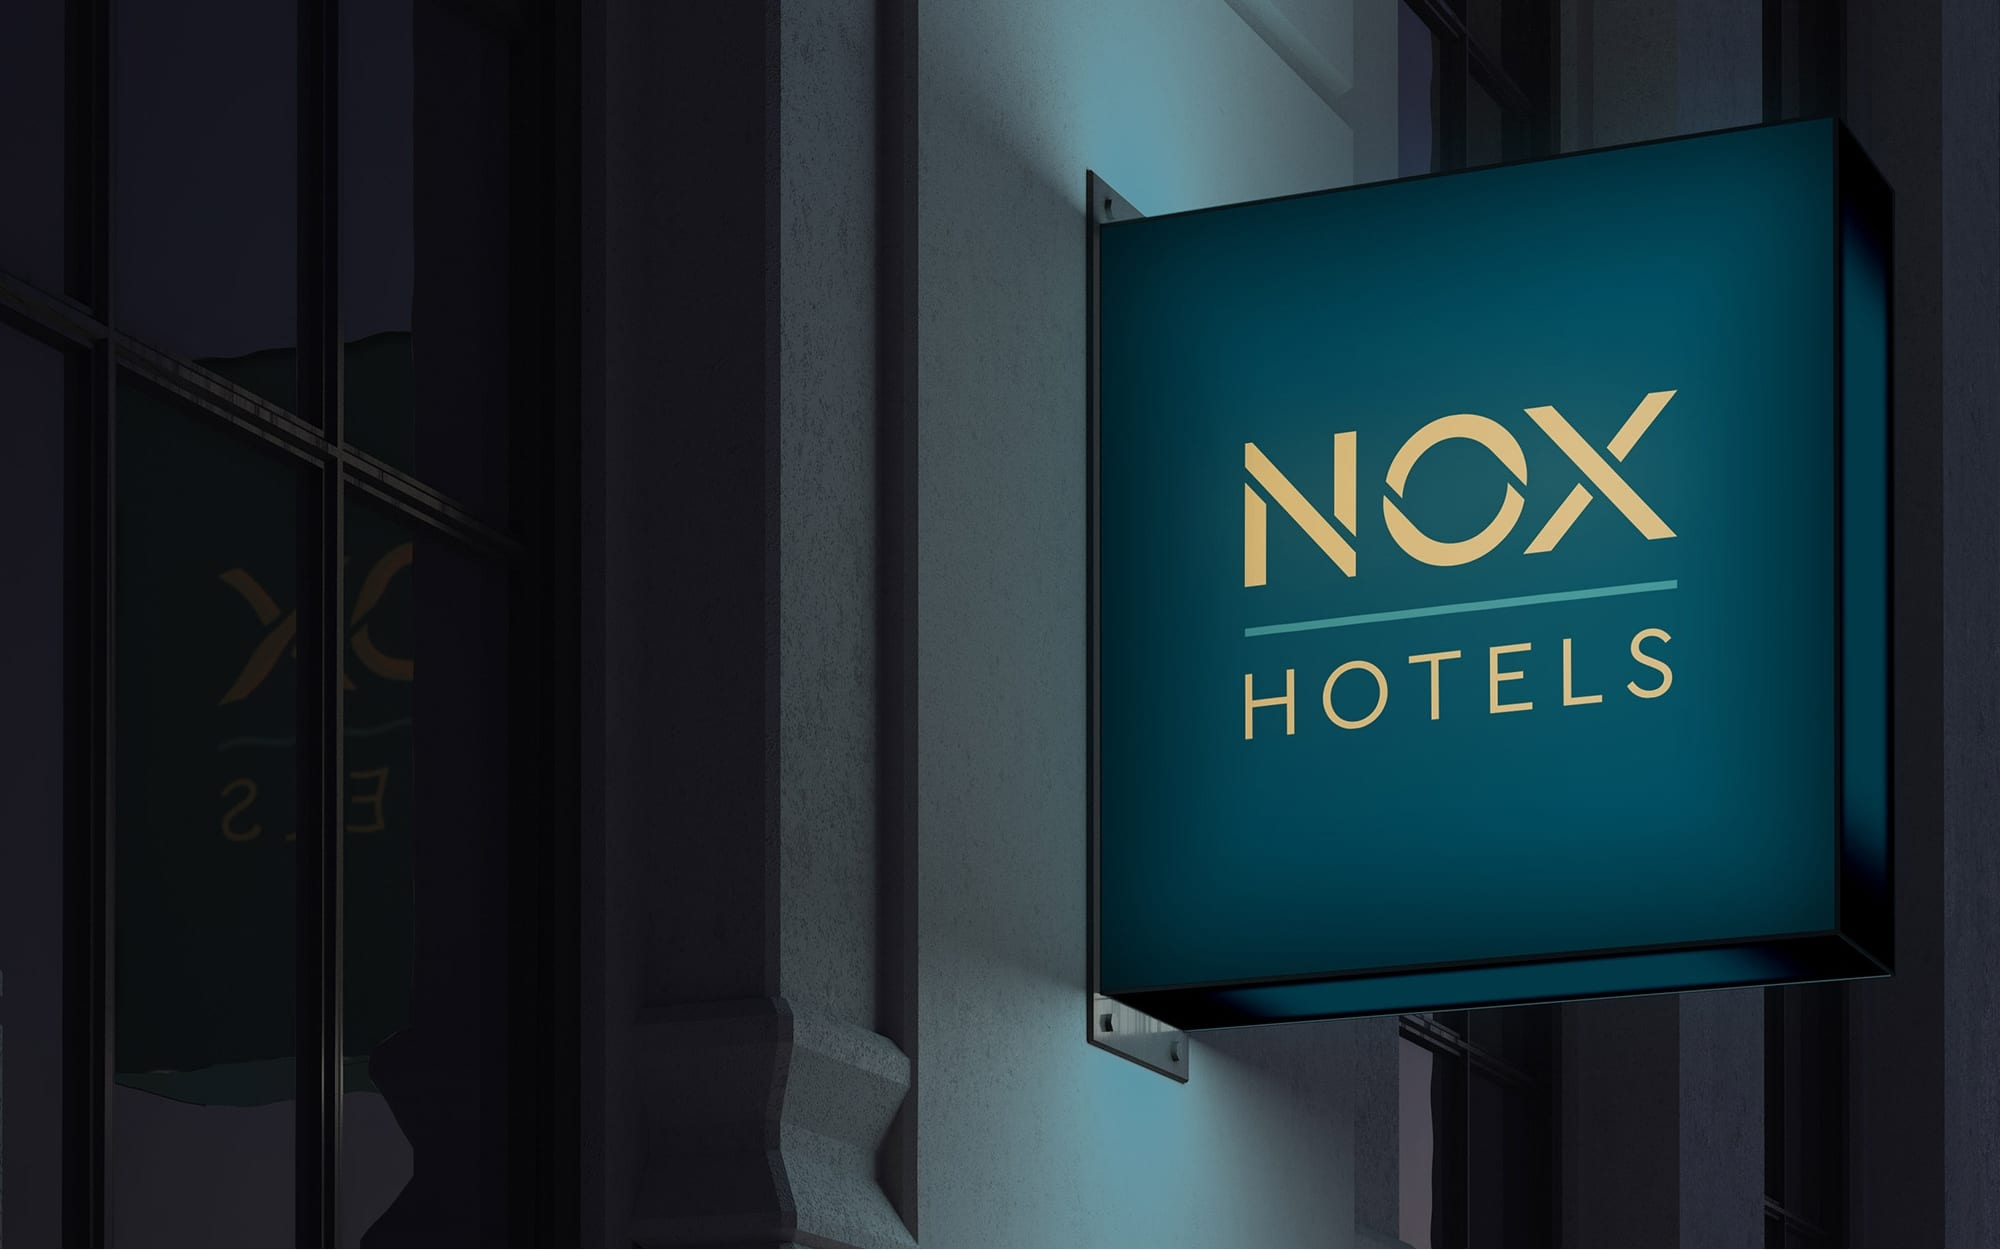 NOX Hotels - boutique hotel chain